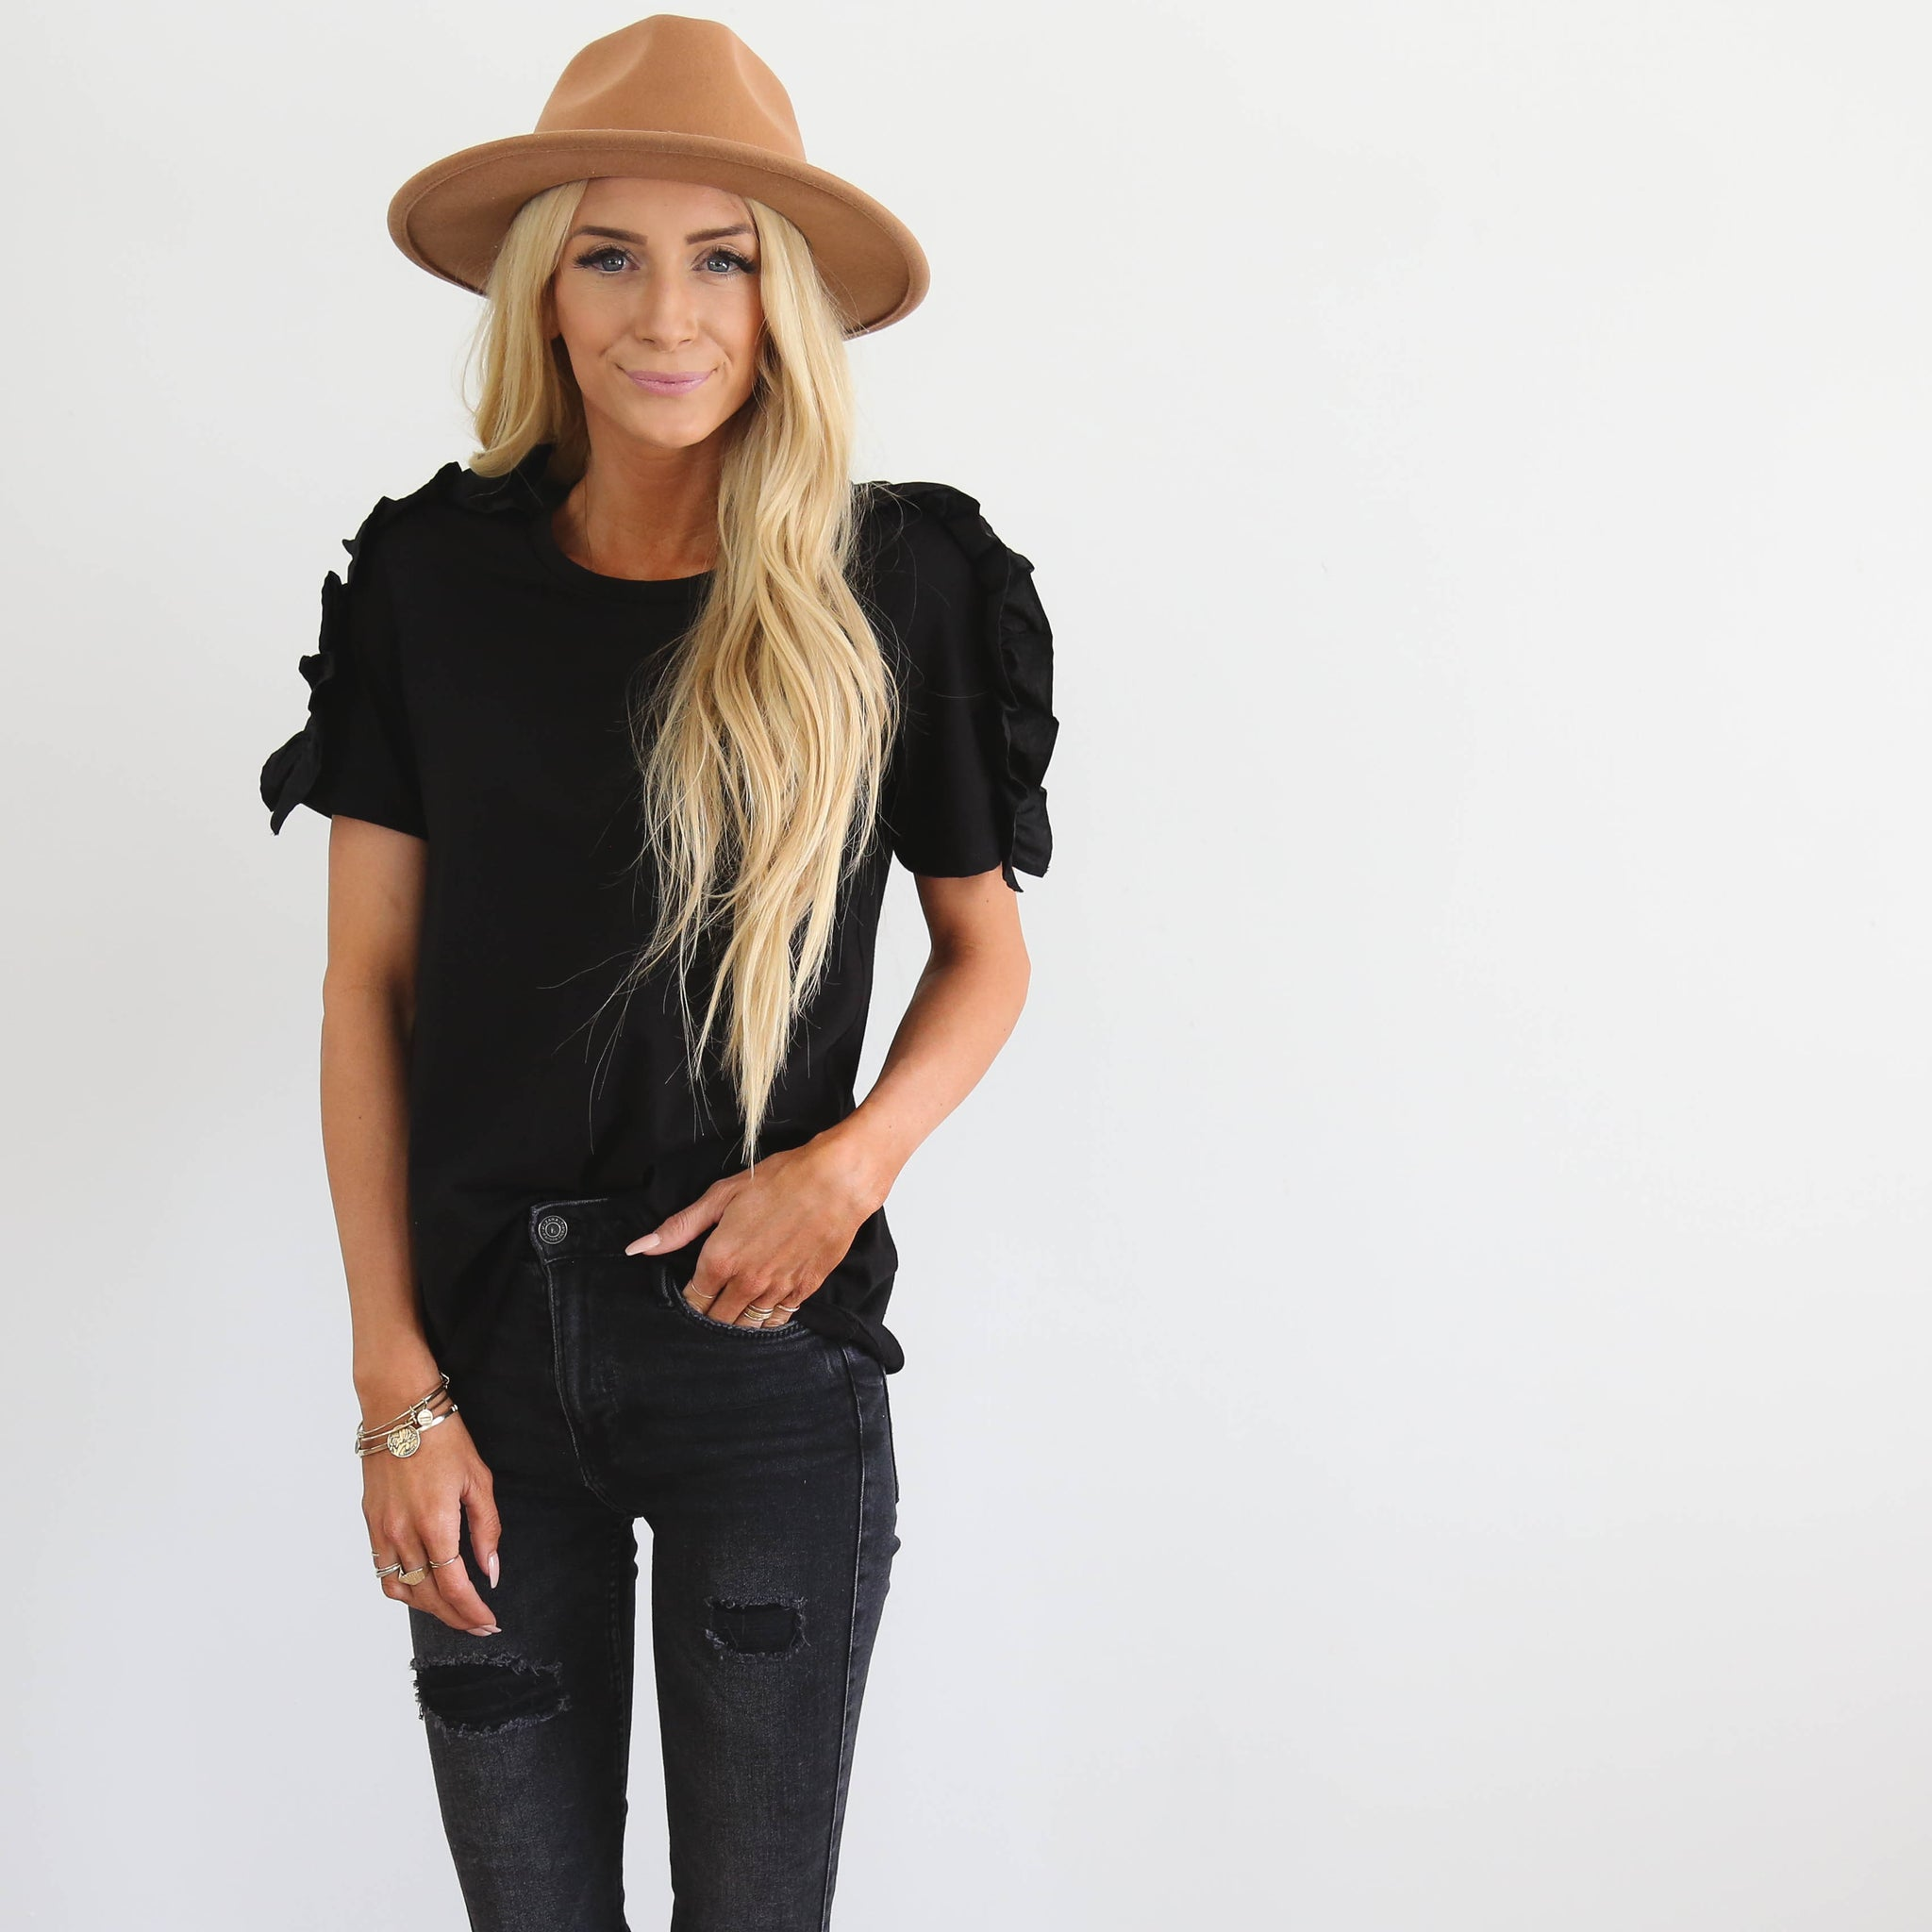 S & Co. Adelise Top in Black